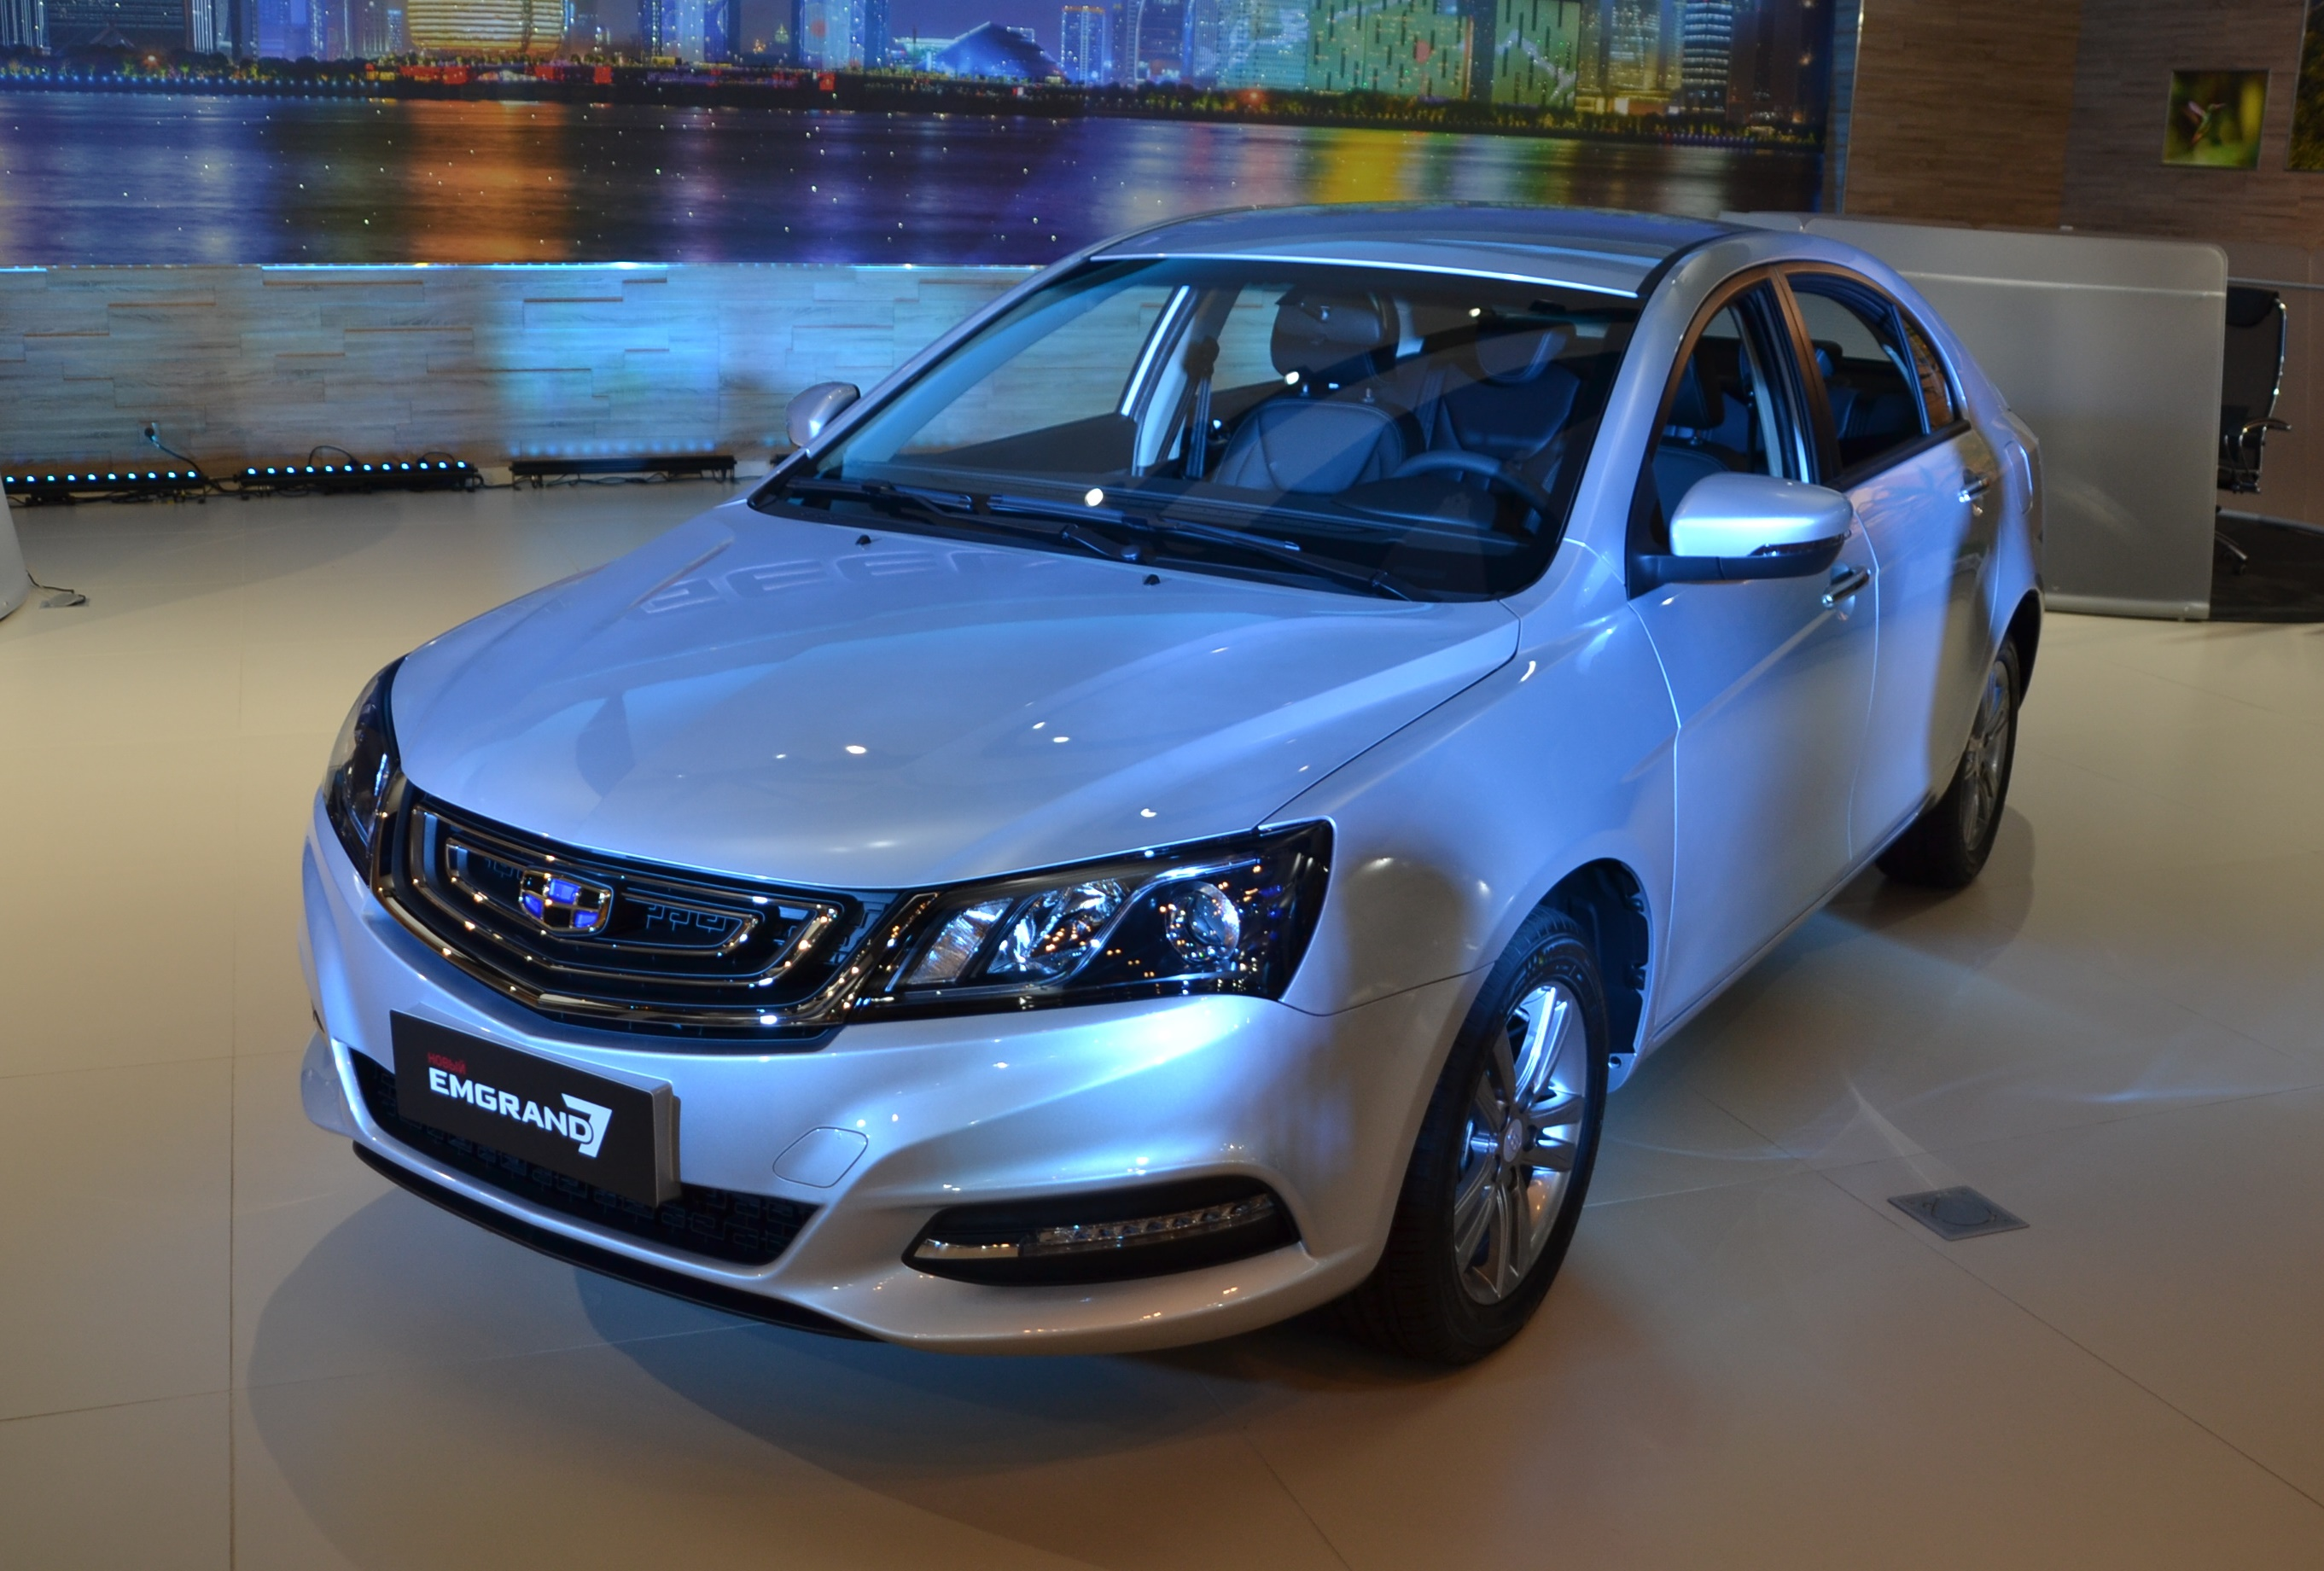 File Geely Emgrand 7 2018 Jpg Wikimedia Commons